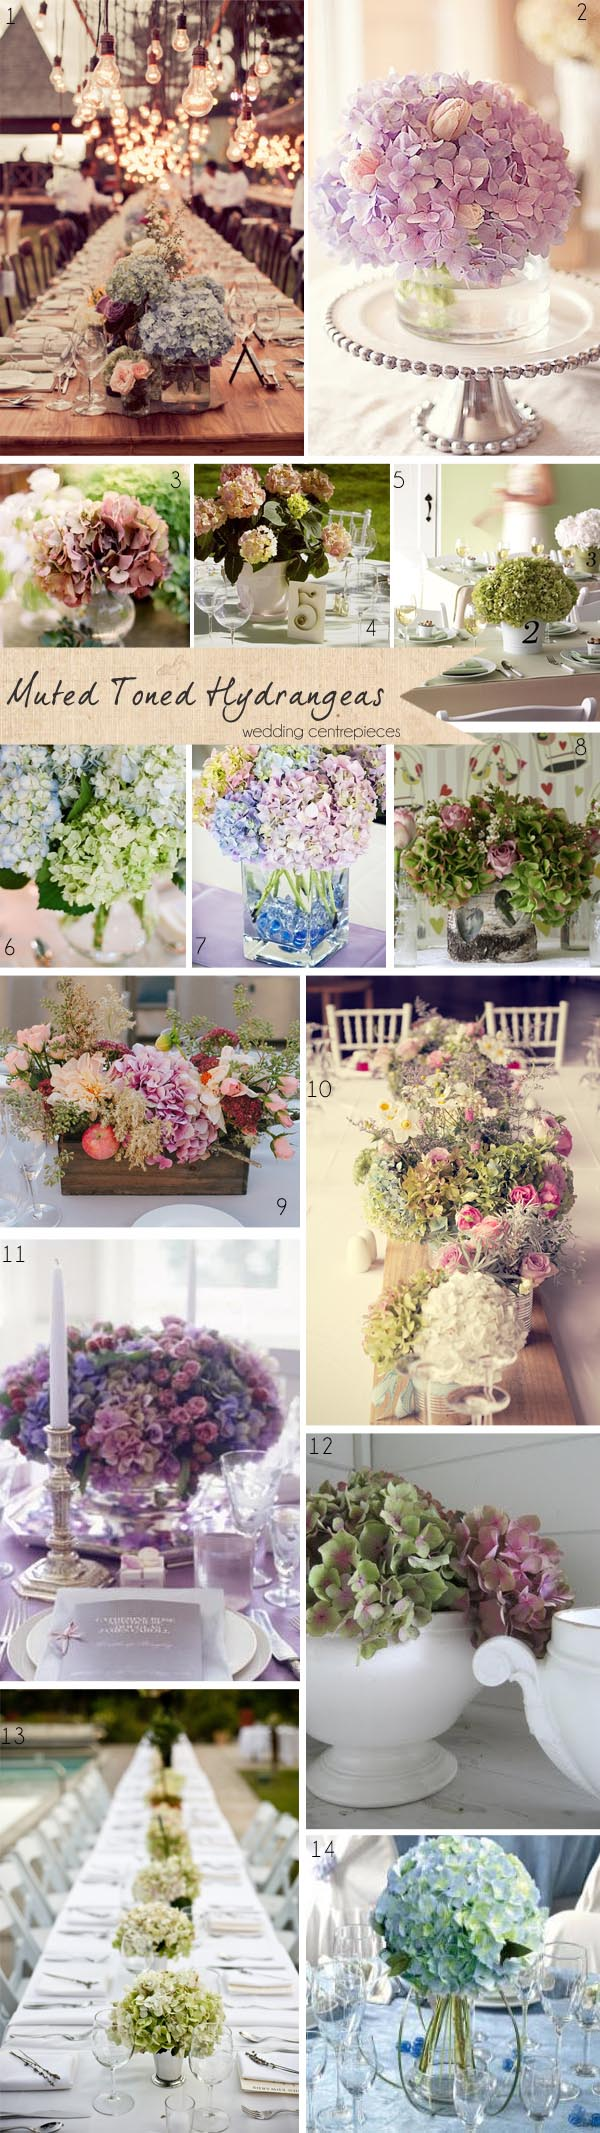 muted vintage hydrangea wedding table centrepieces